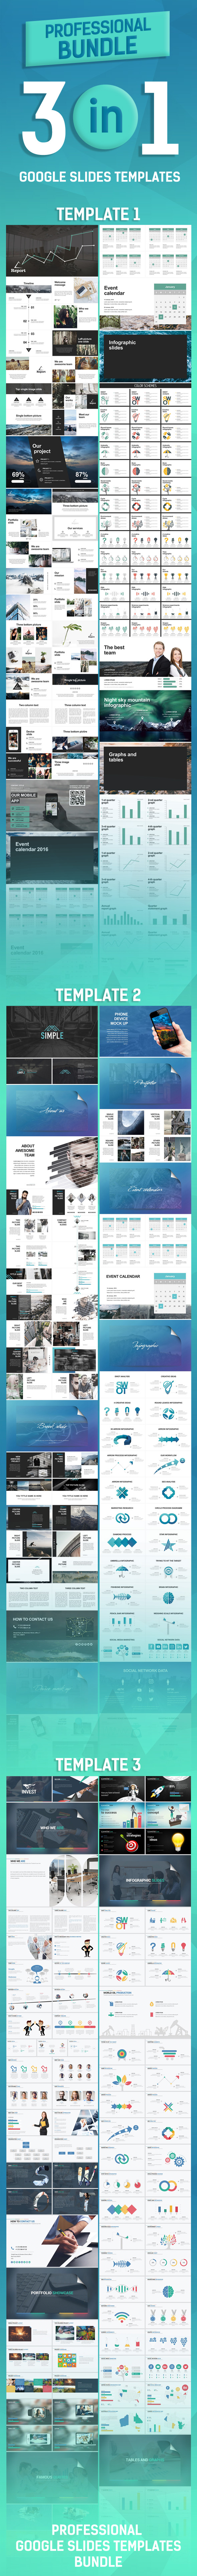 Professional Bundle - Google Slides Presentation Templates